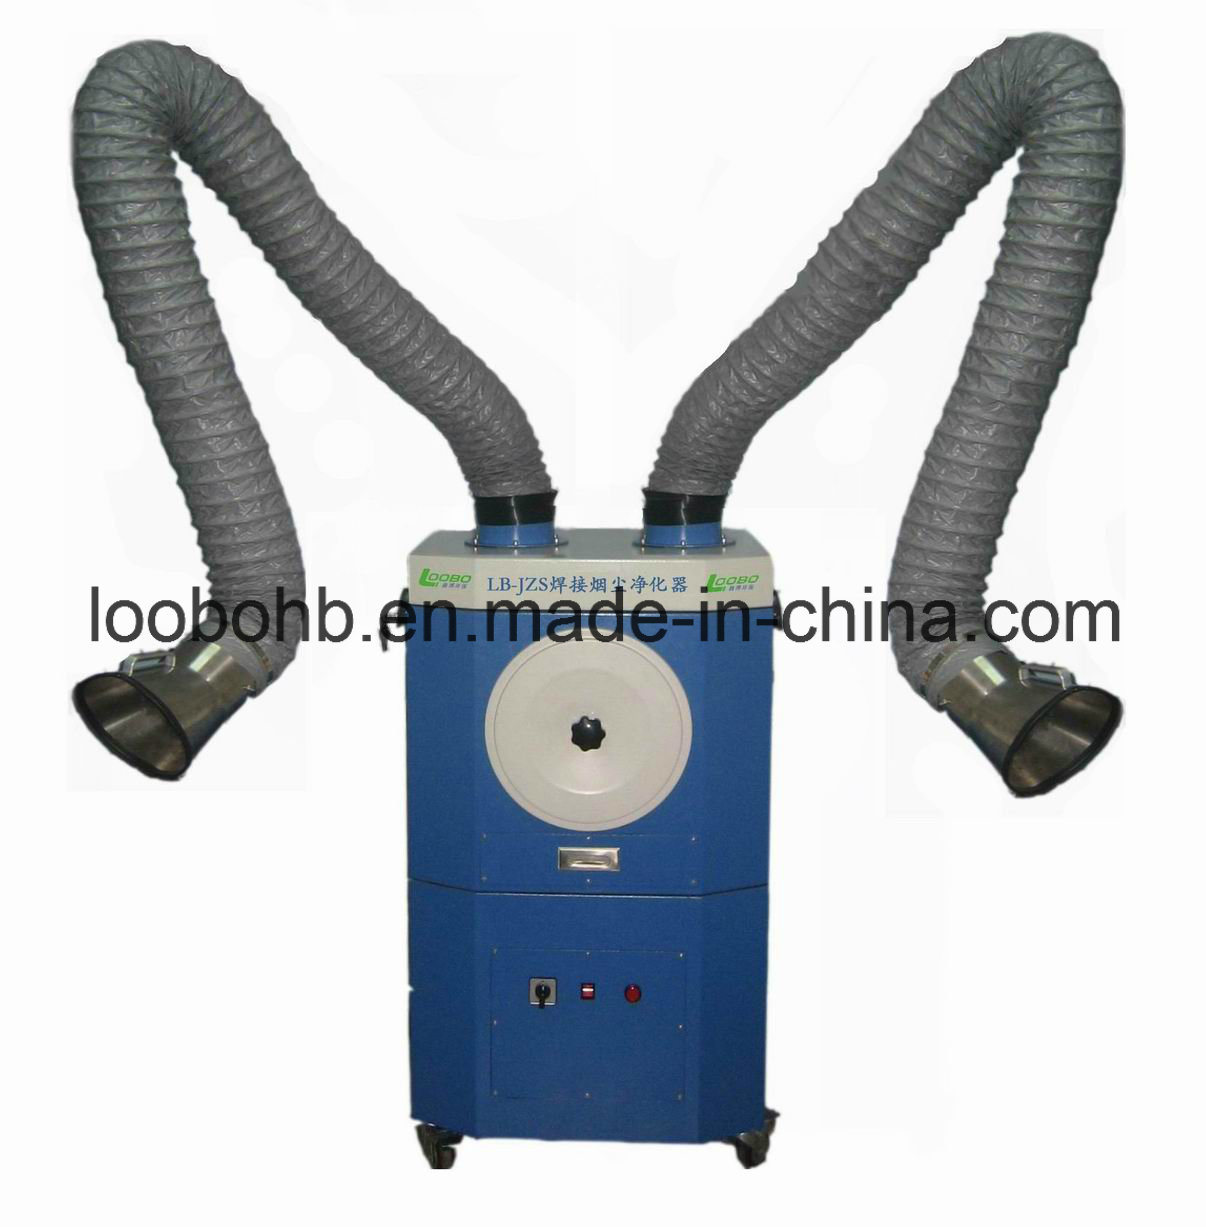 Mobile Portable Welding Fume Extractor Smoke Eater for Dust Extraction (LB-JZD) pictures & photos